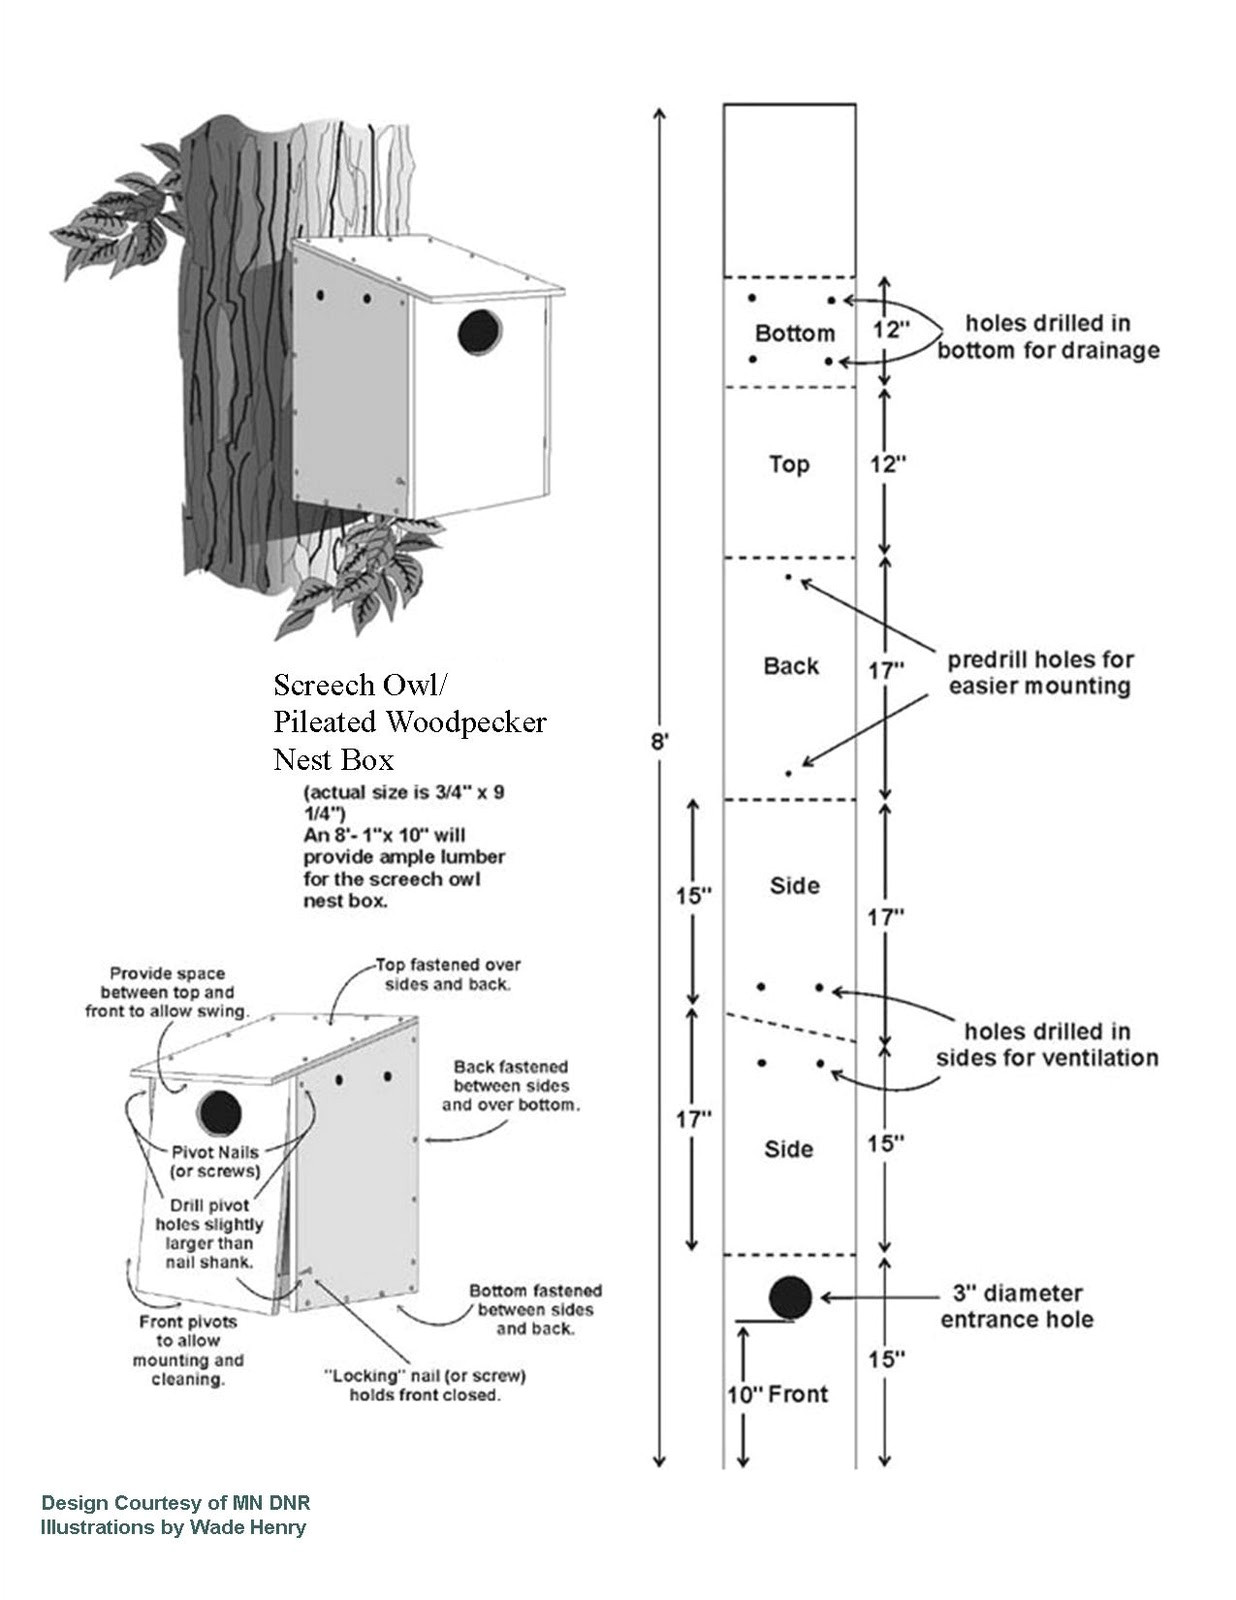 pdf plans pileated woodpecker bird house plans download amish bench plans